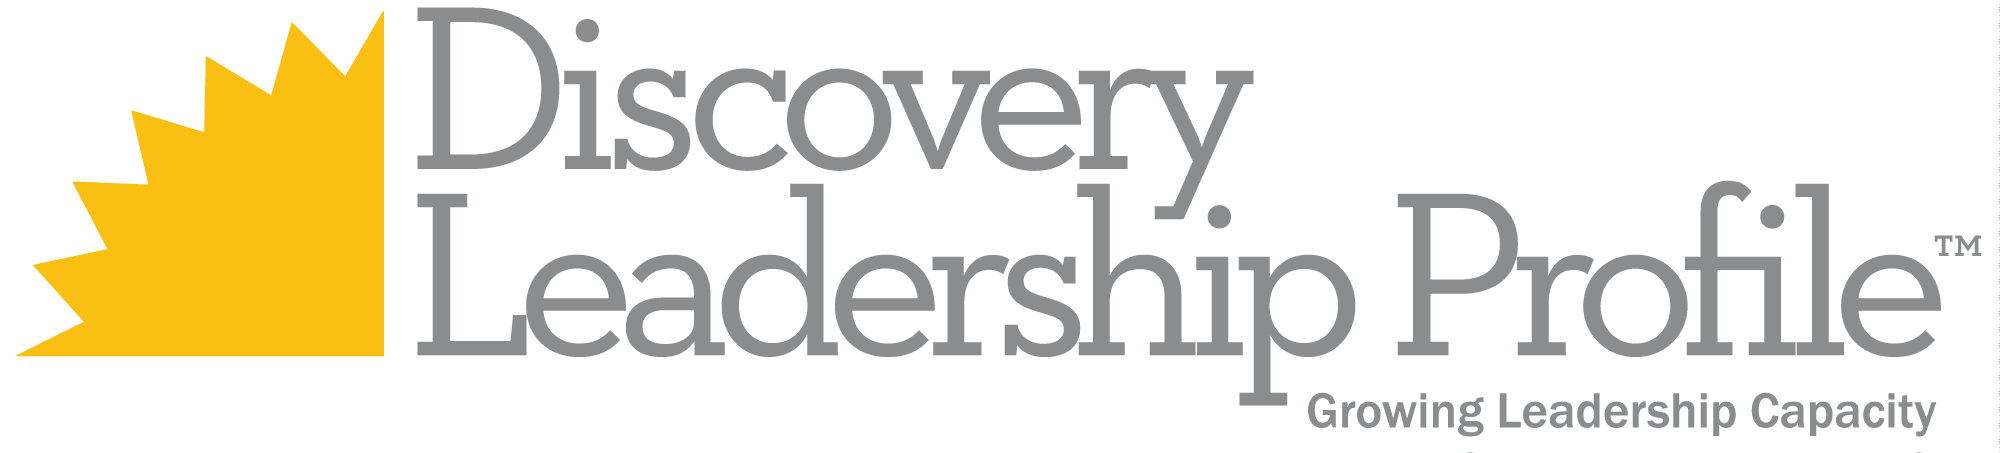 Discovery-Leadership-Profile1